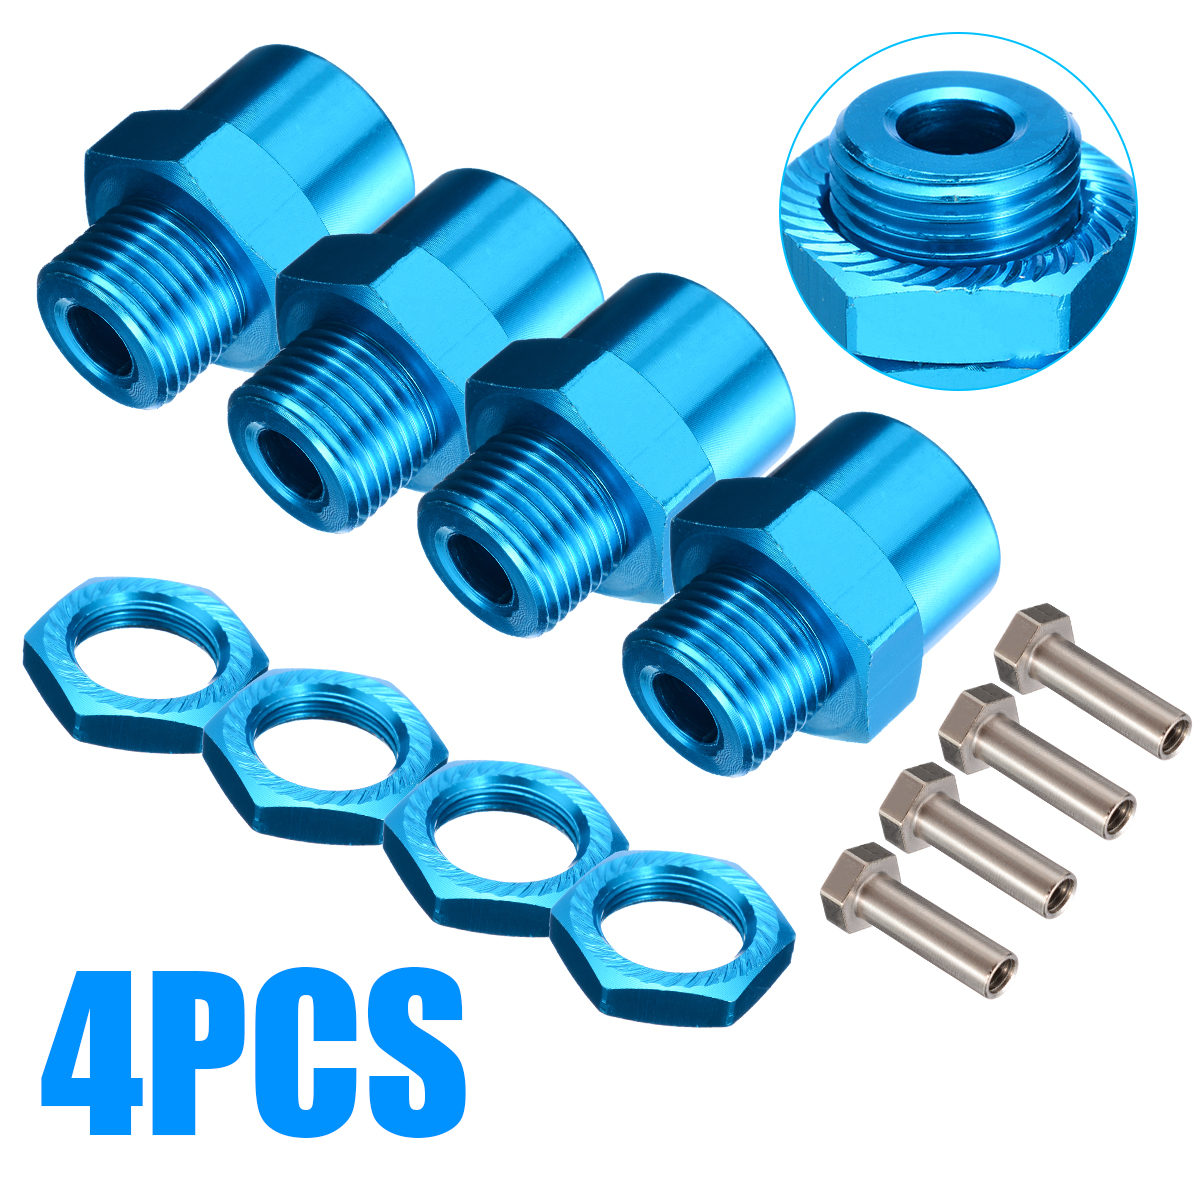 4pcs 12mm To 17mm Wheel Hex Conversion Adapter For 1/10 RC Car Upgrade With Pins&Screws Accessories